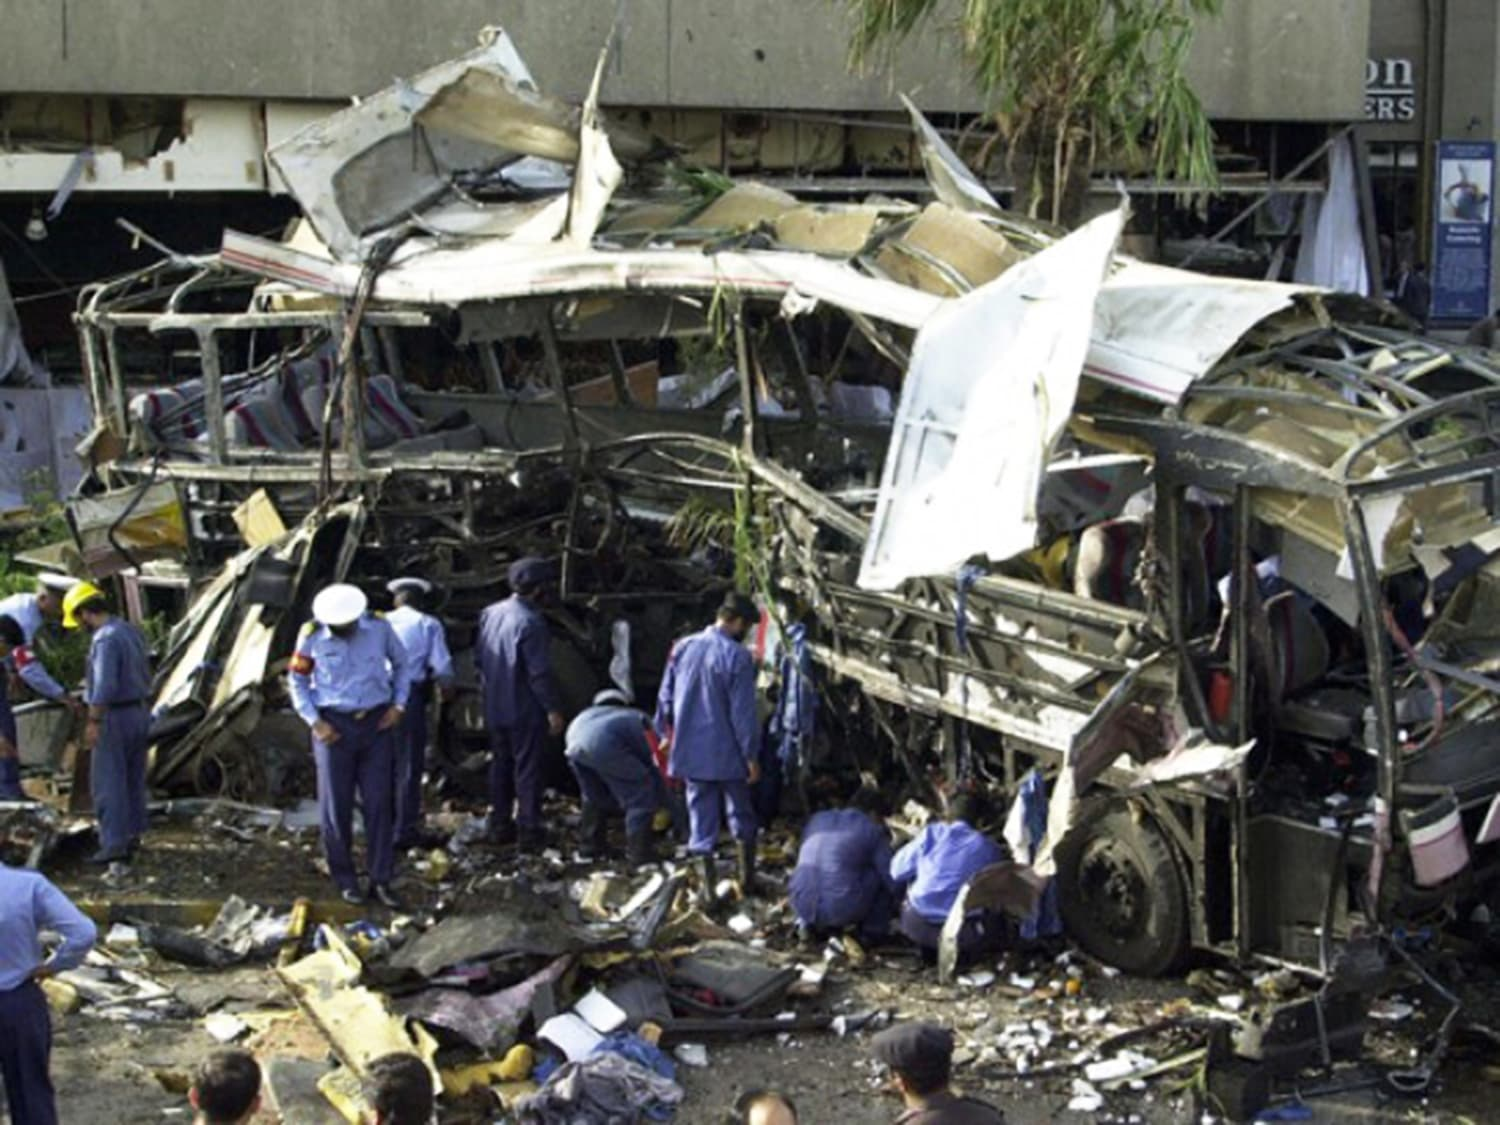 The first major terror attack in Karachi by extremist outfits took place in 2002.